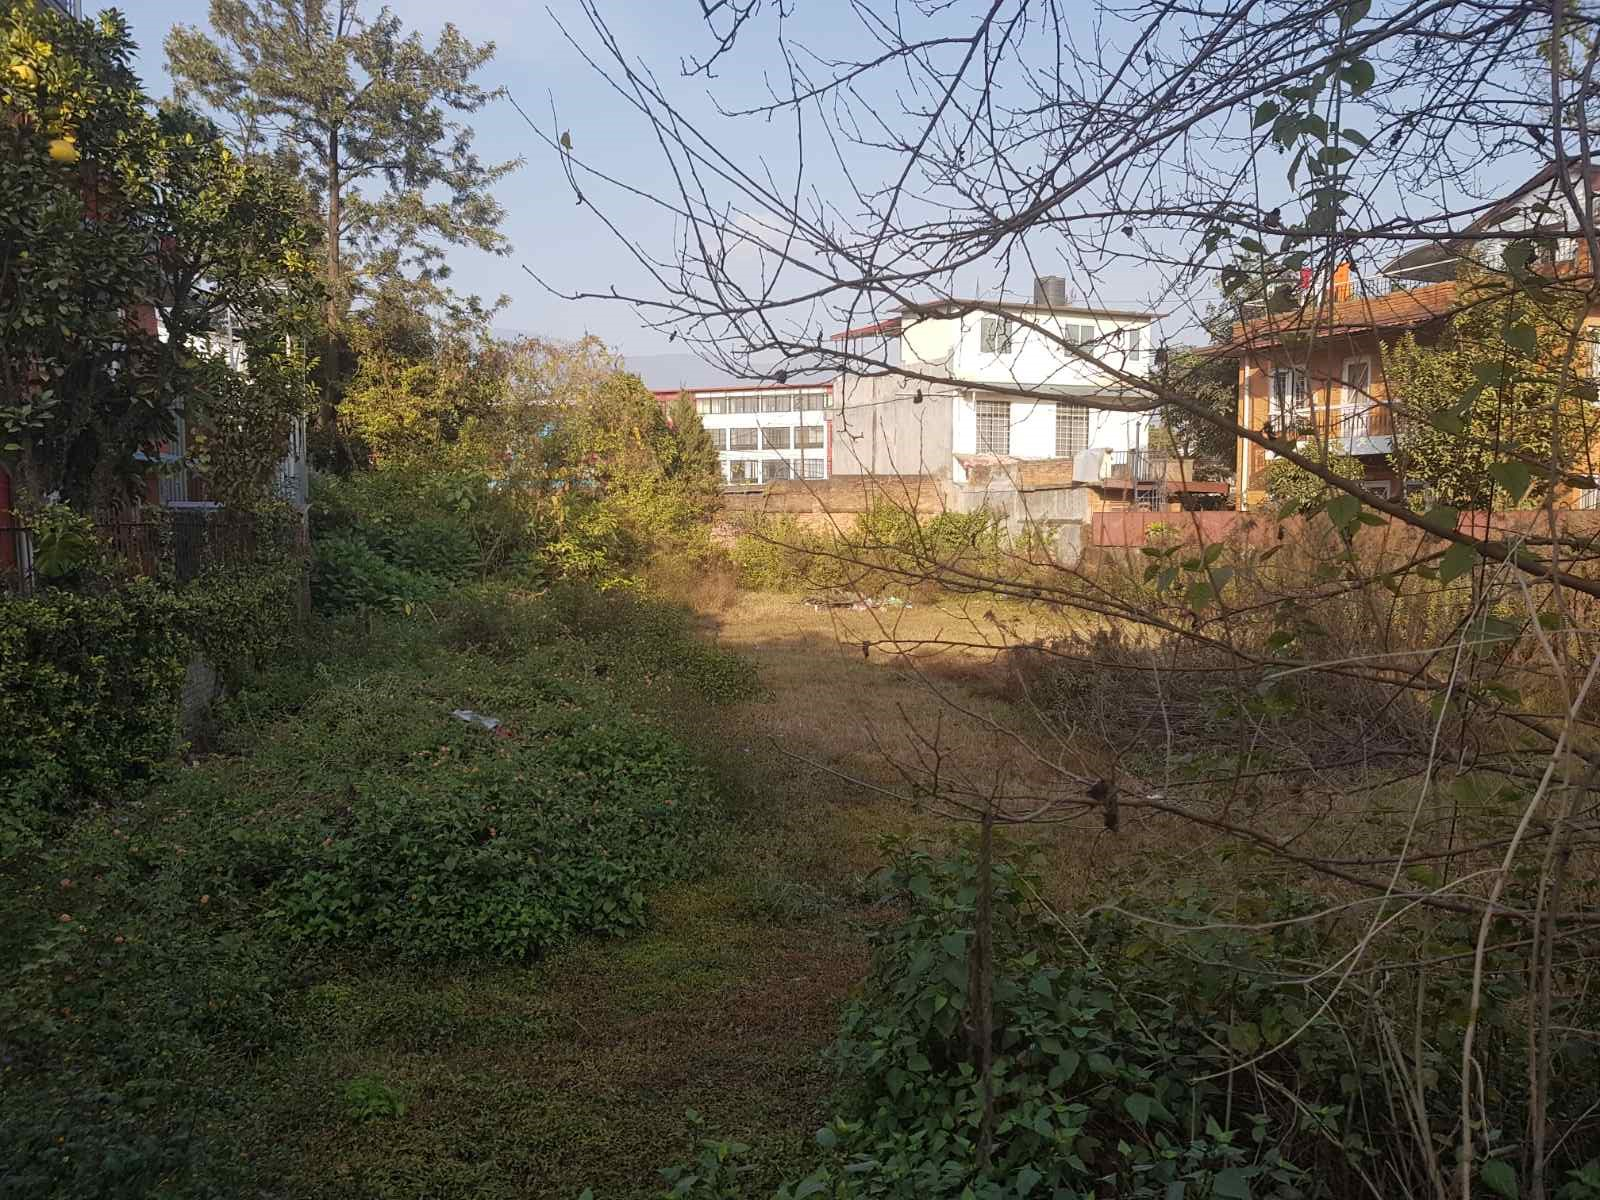 Land for sale at Chappal Karkhana